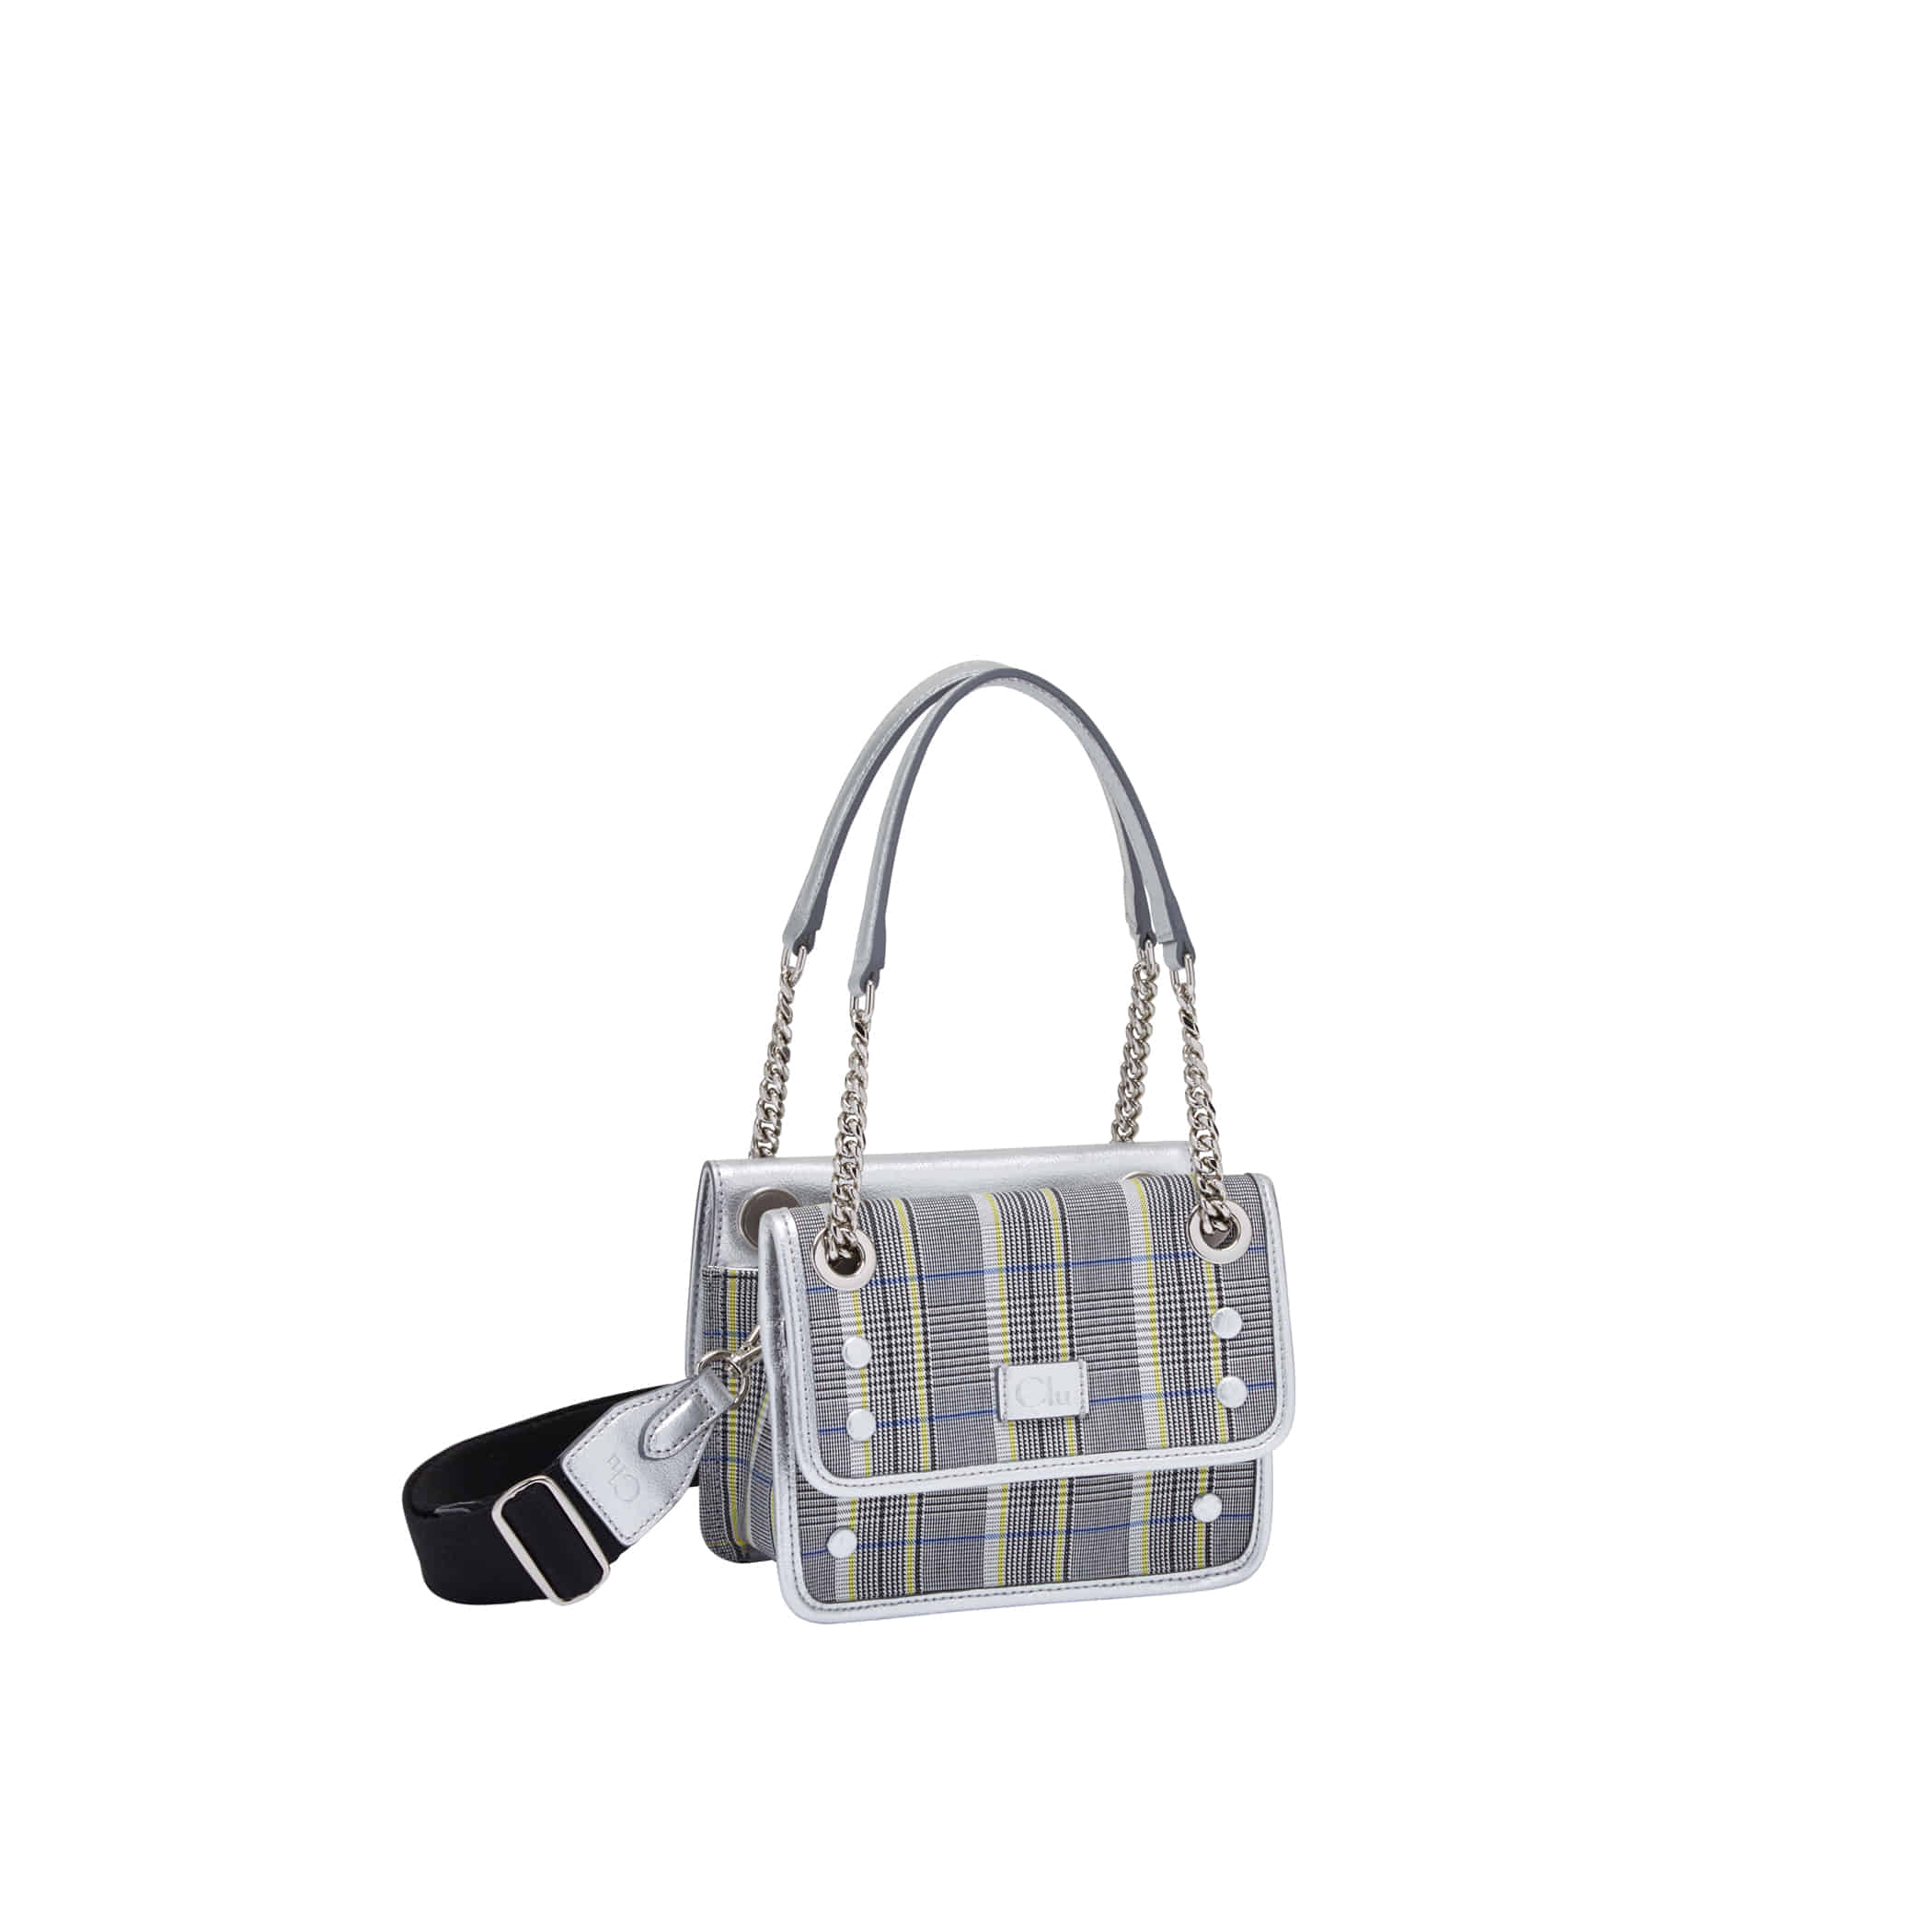 Clu_JAXSTA MINI CROSS BAG IN SILVER